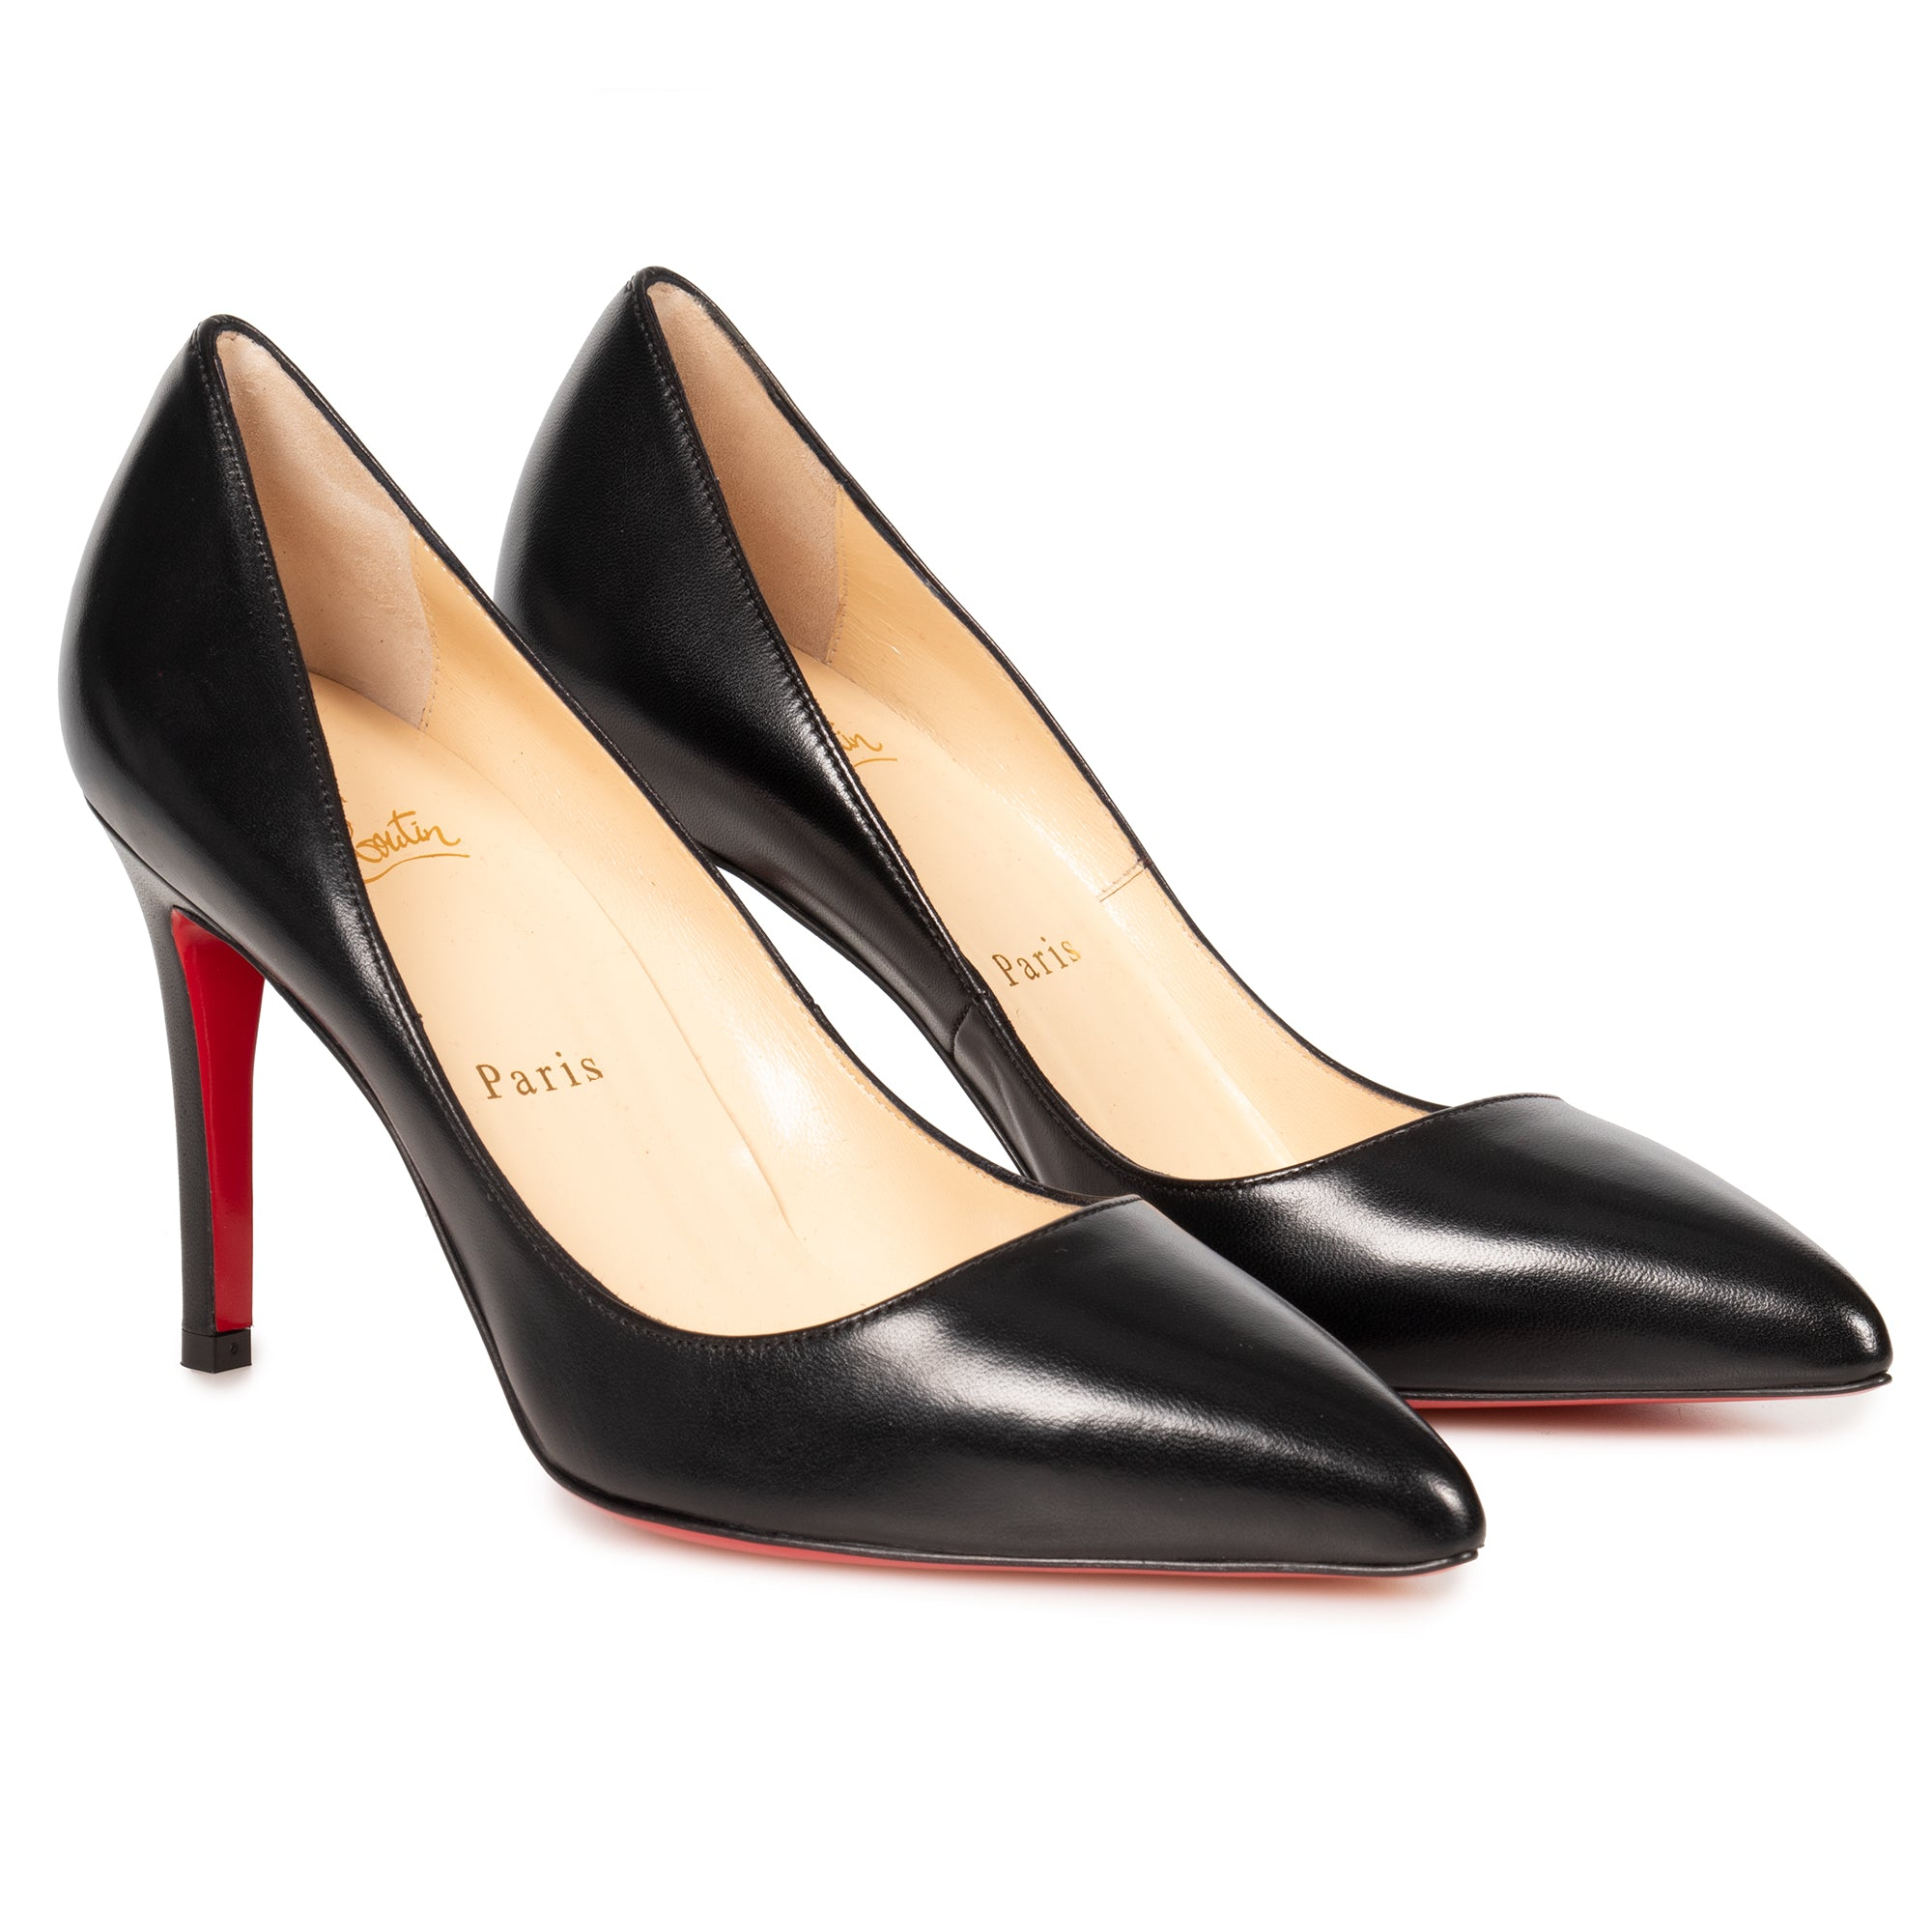 Christian Louboutin Christian Louboutin Pigalle Black Nappa Leather 85 mm Pumps